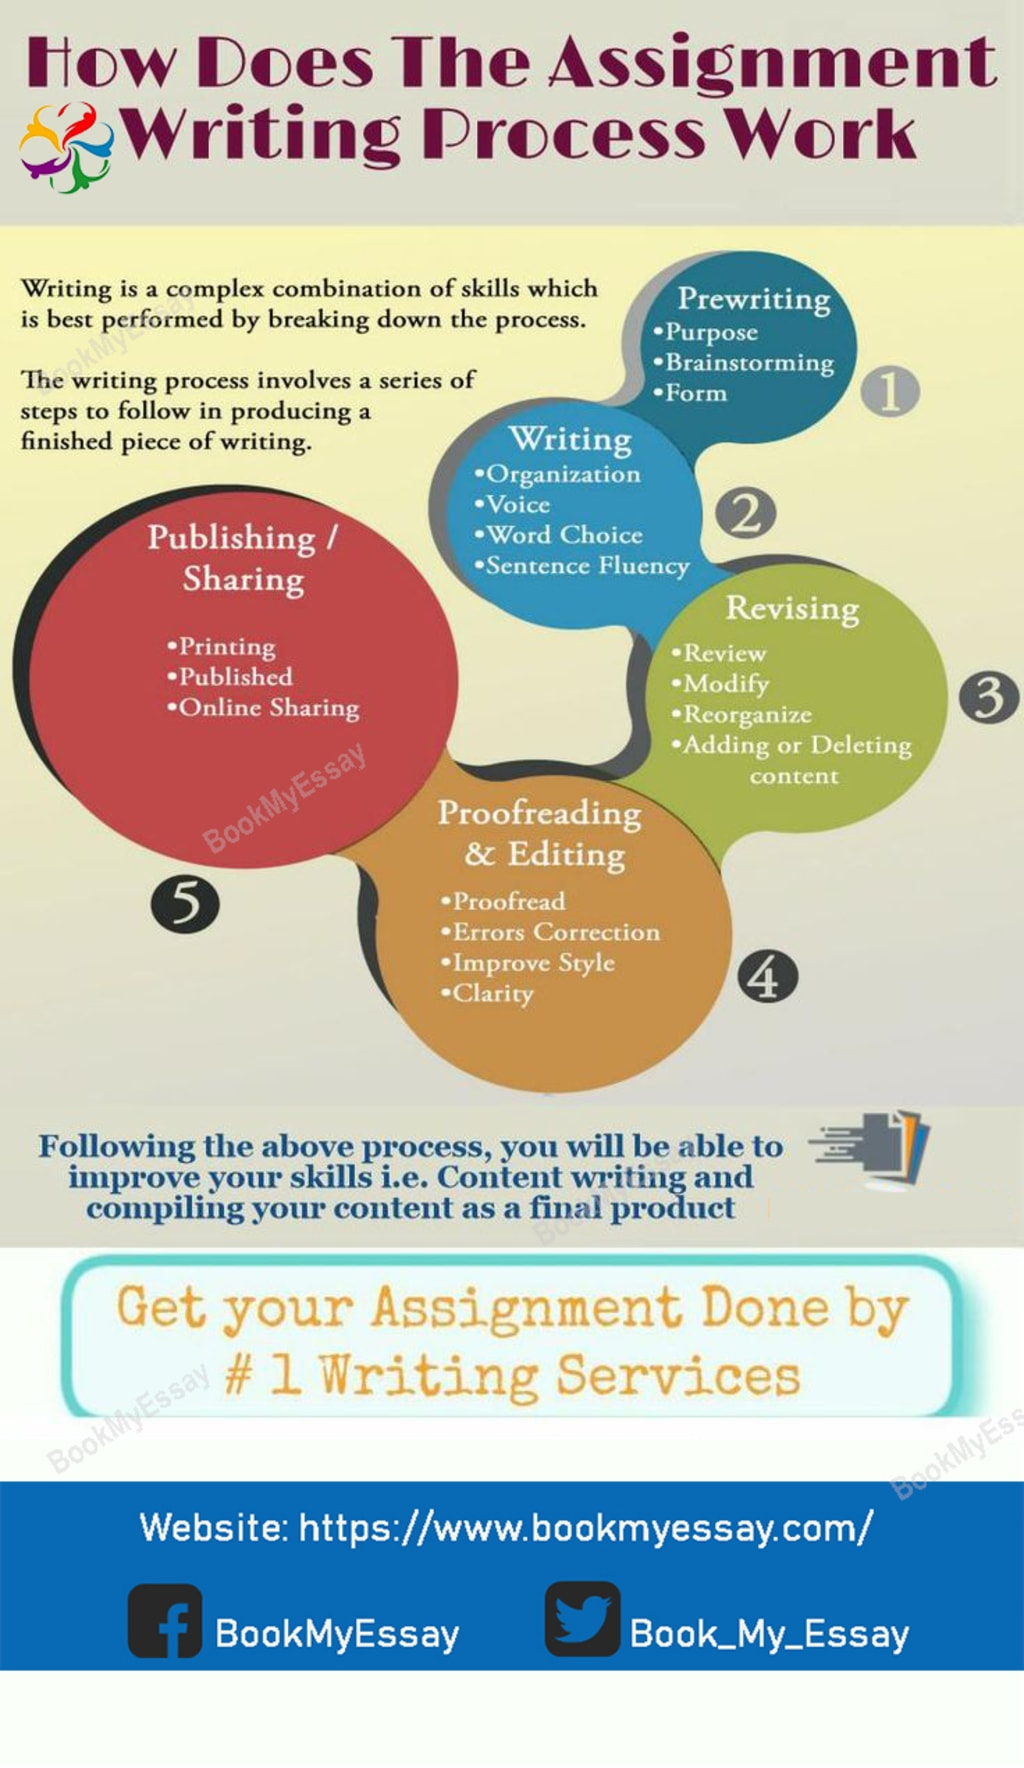 How Does Assignment Writing Process Work? via George Young